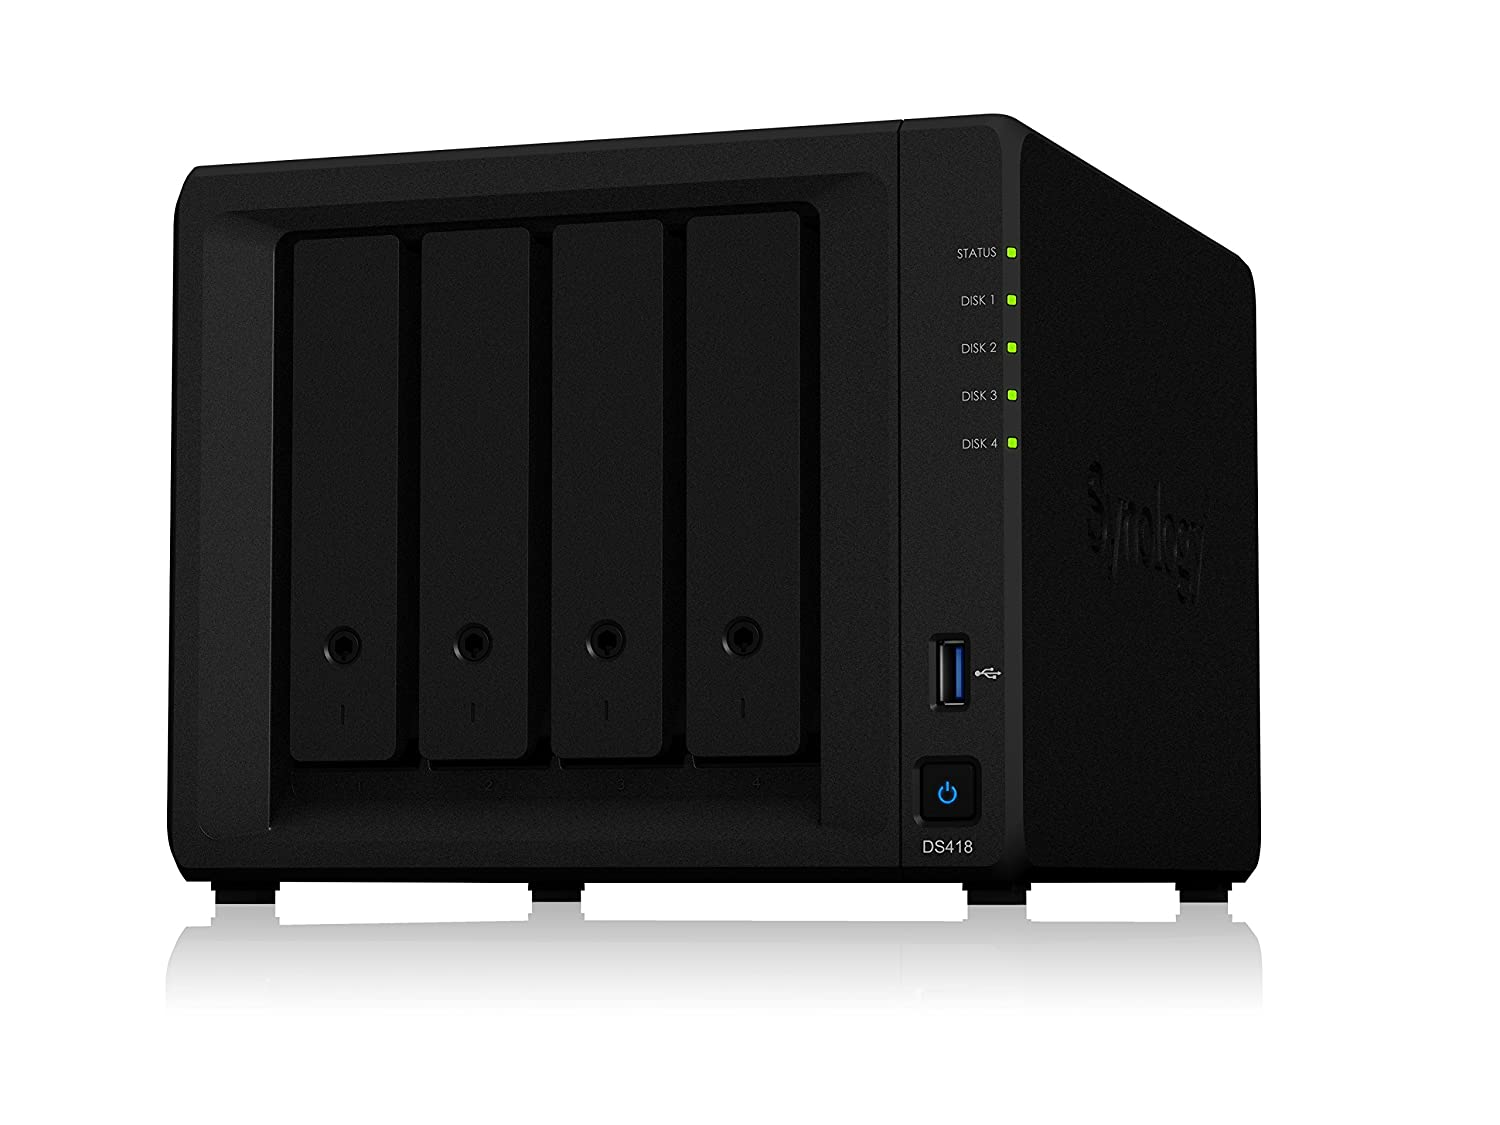 DS418 NAS Mini Tower Ethernet Negro servidor de almacenamiento